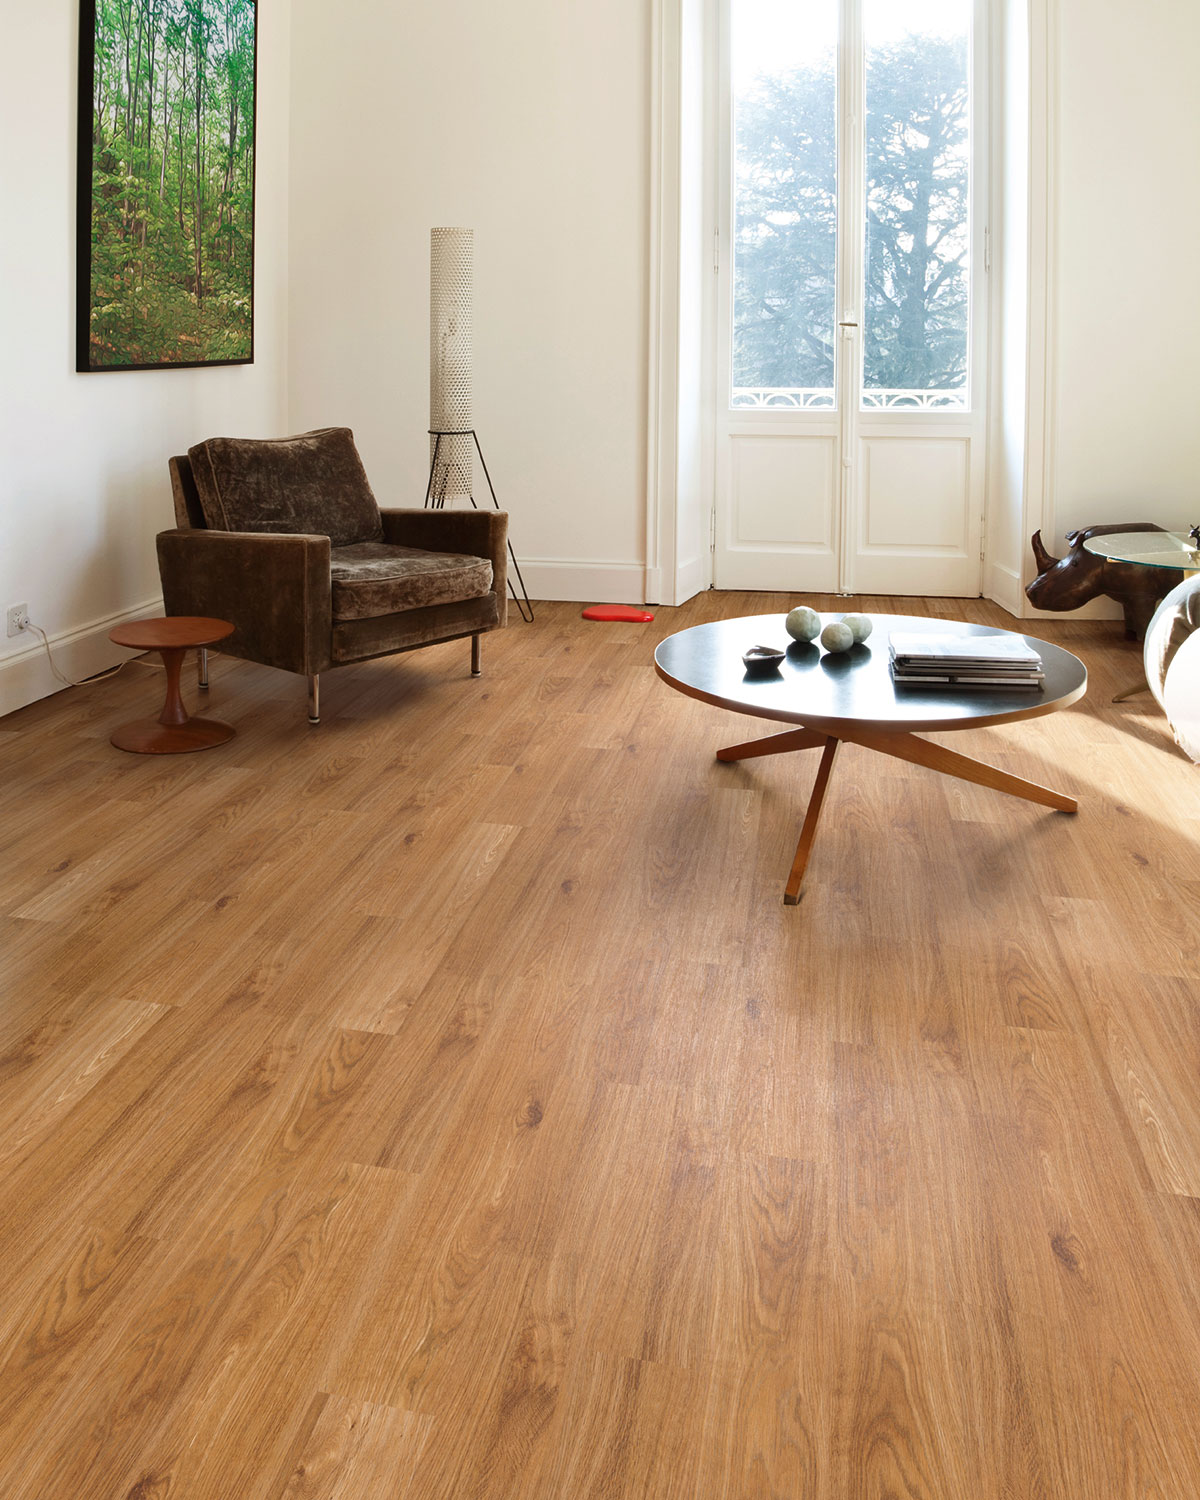 Rt02 Golden Oak Natural Wood Luxury Vinyl Flooring